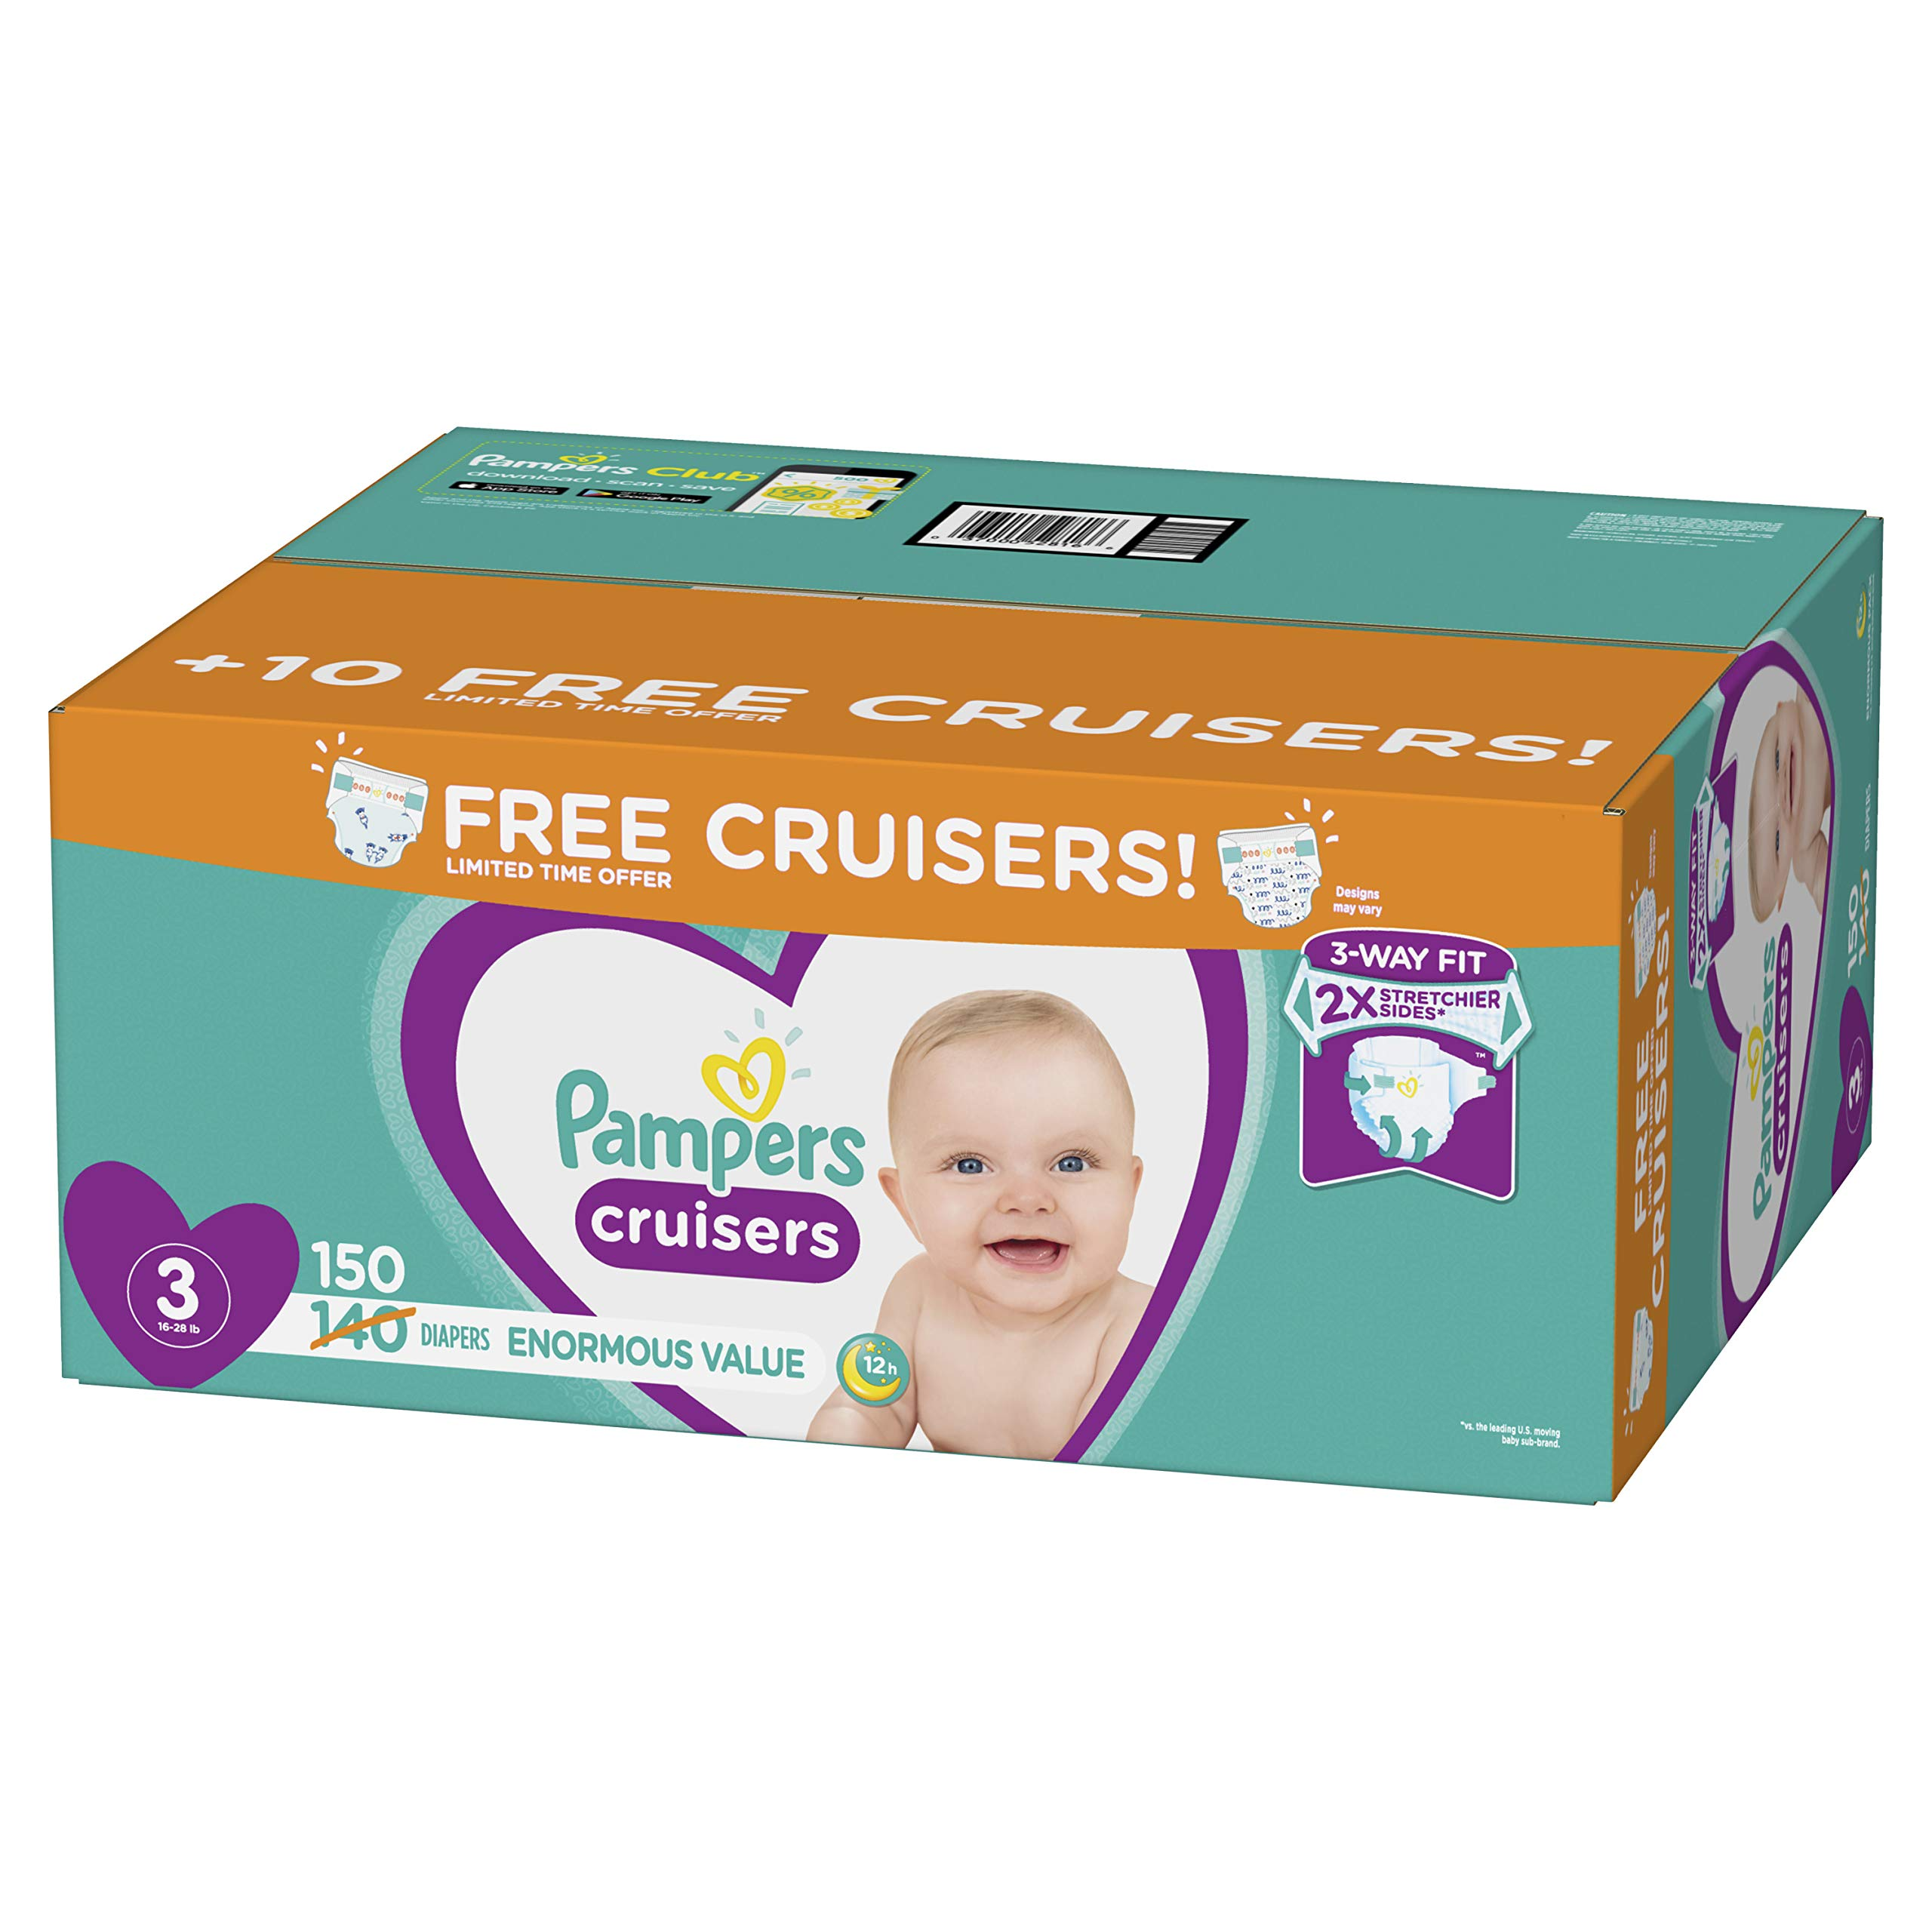 Pampers Cruisers Disposable Baby Diapers, Enormous Pack